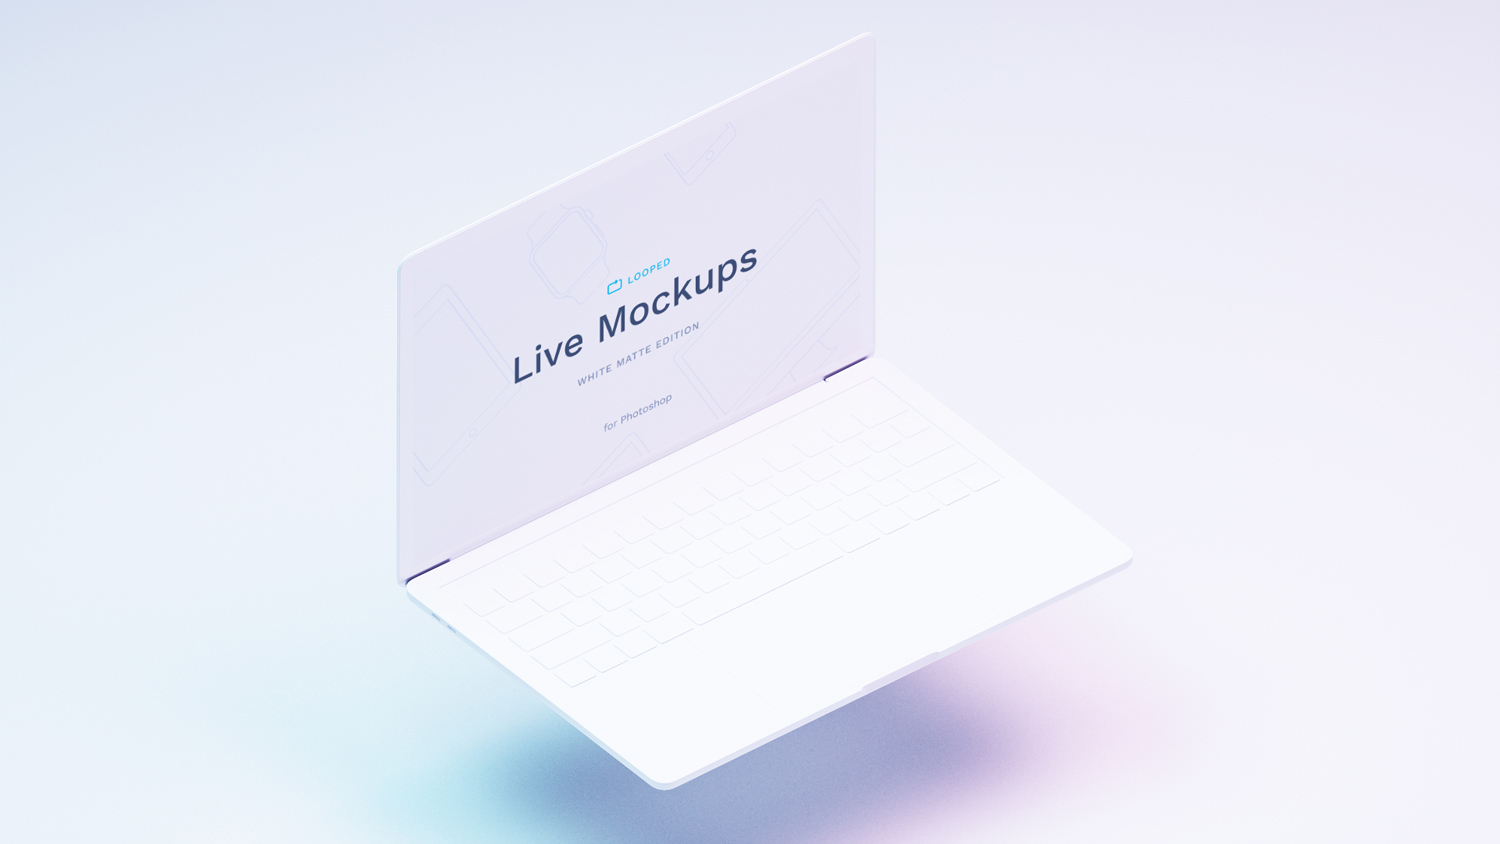 Macbook-Color-White-Matte-Apple-Devices-Mockup